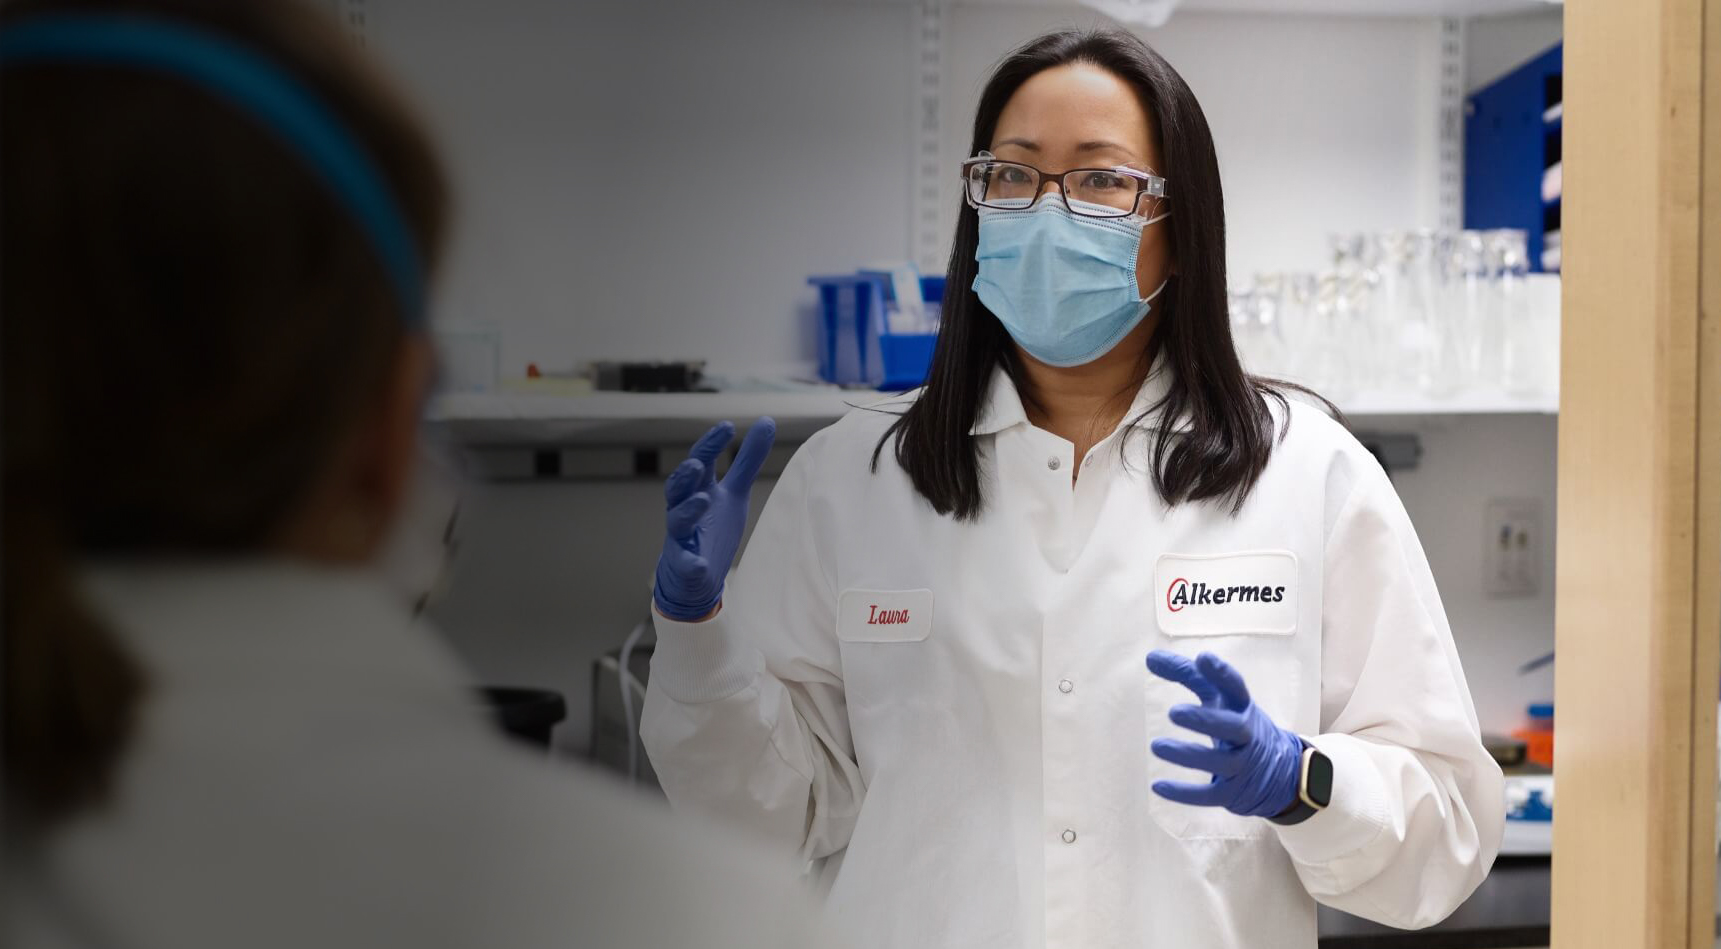 Woman in lab coat with blue gloves, glasses and a mask speaking to colleague at Alkermes